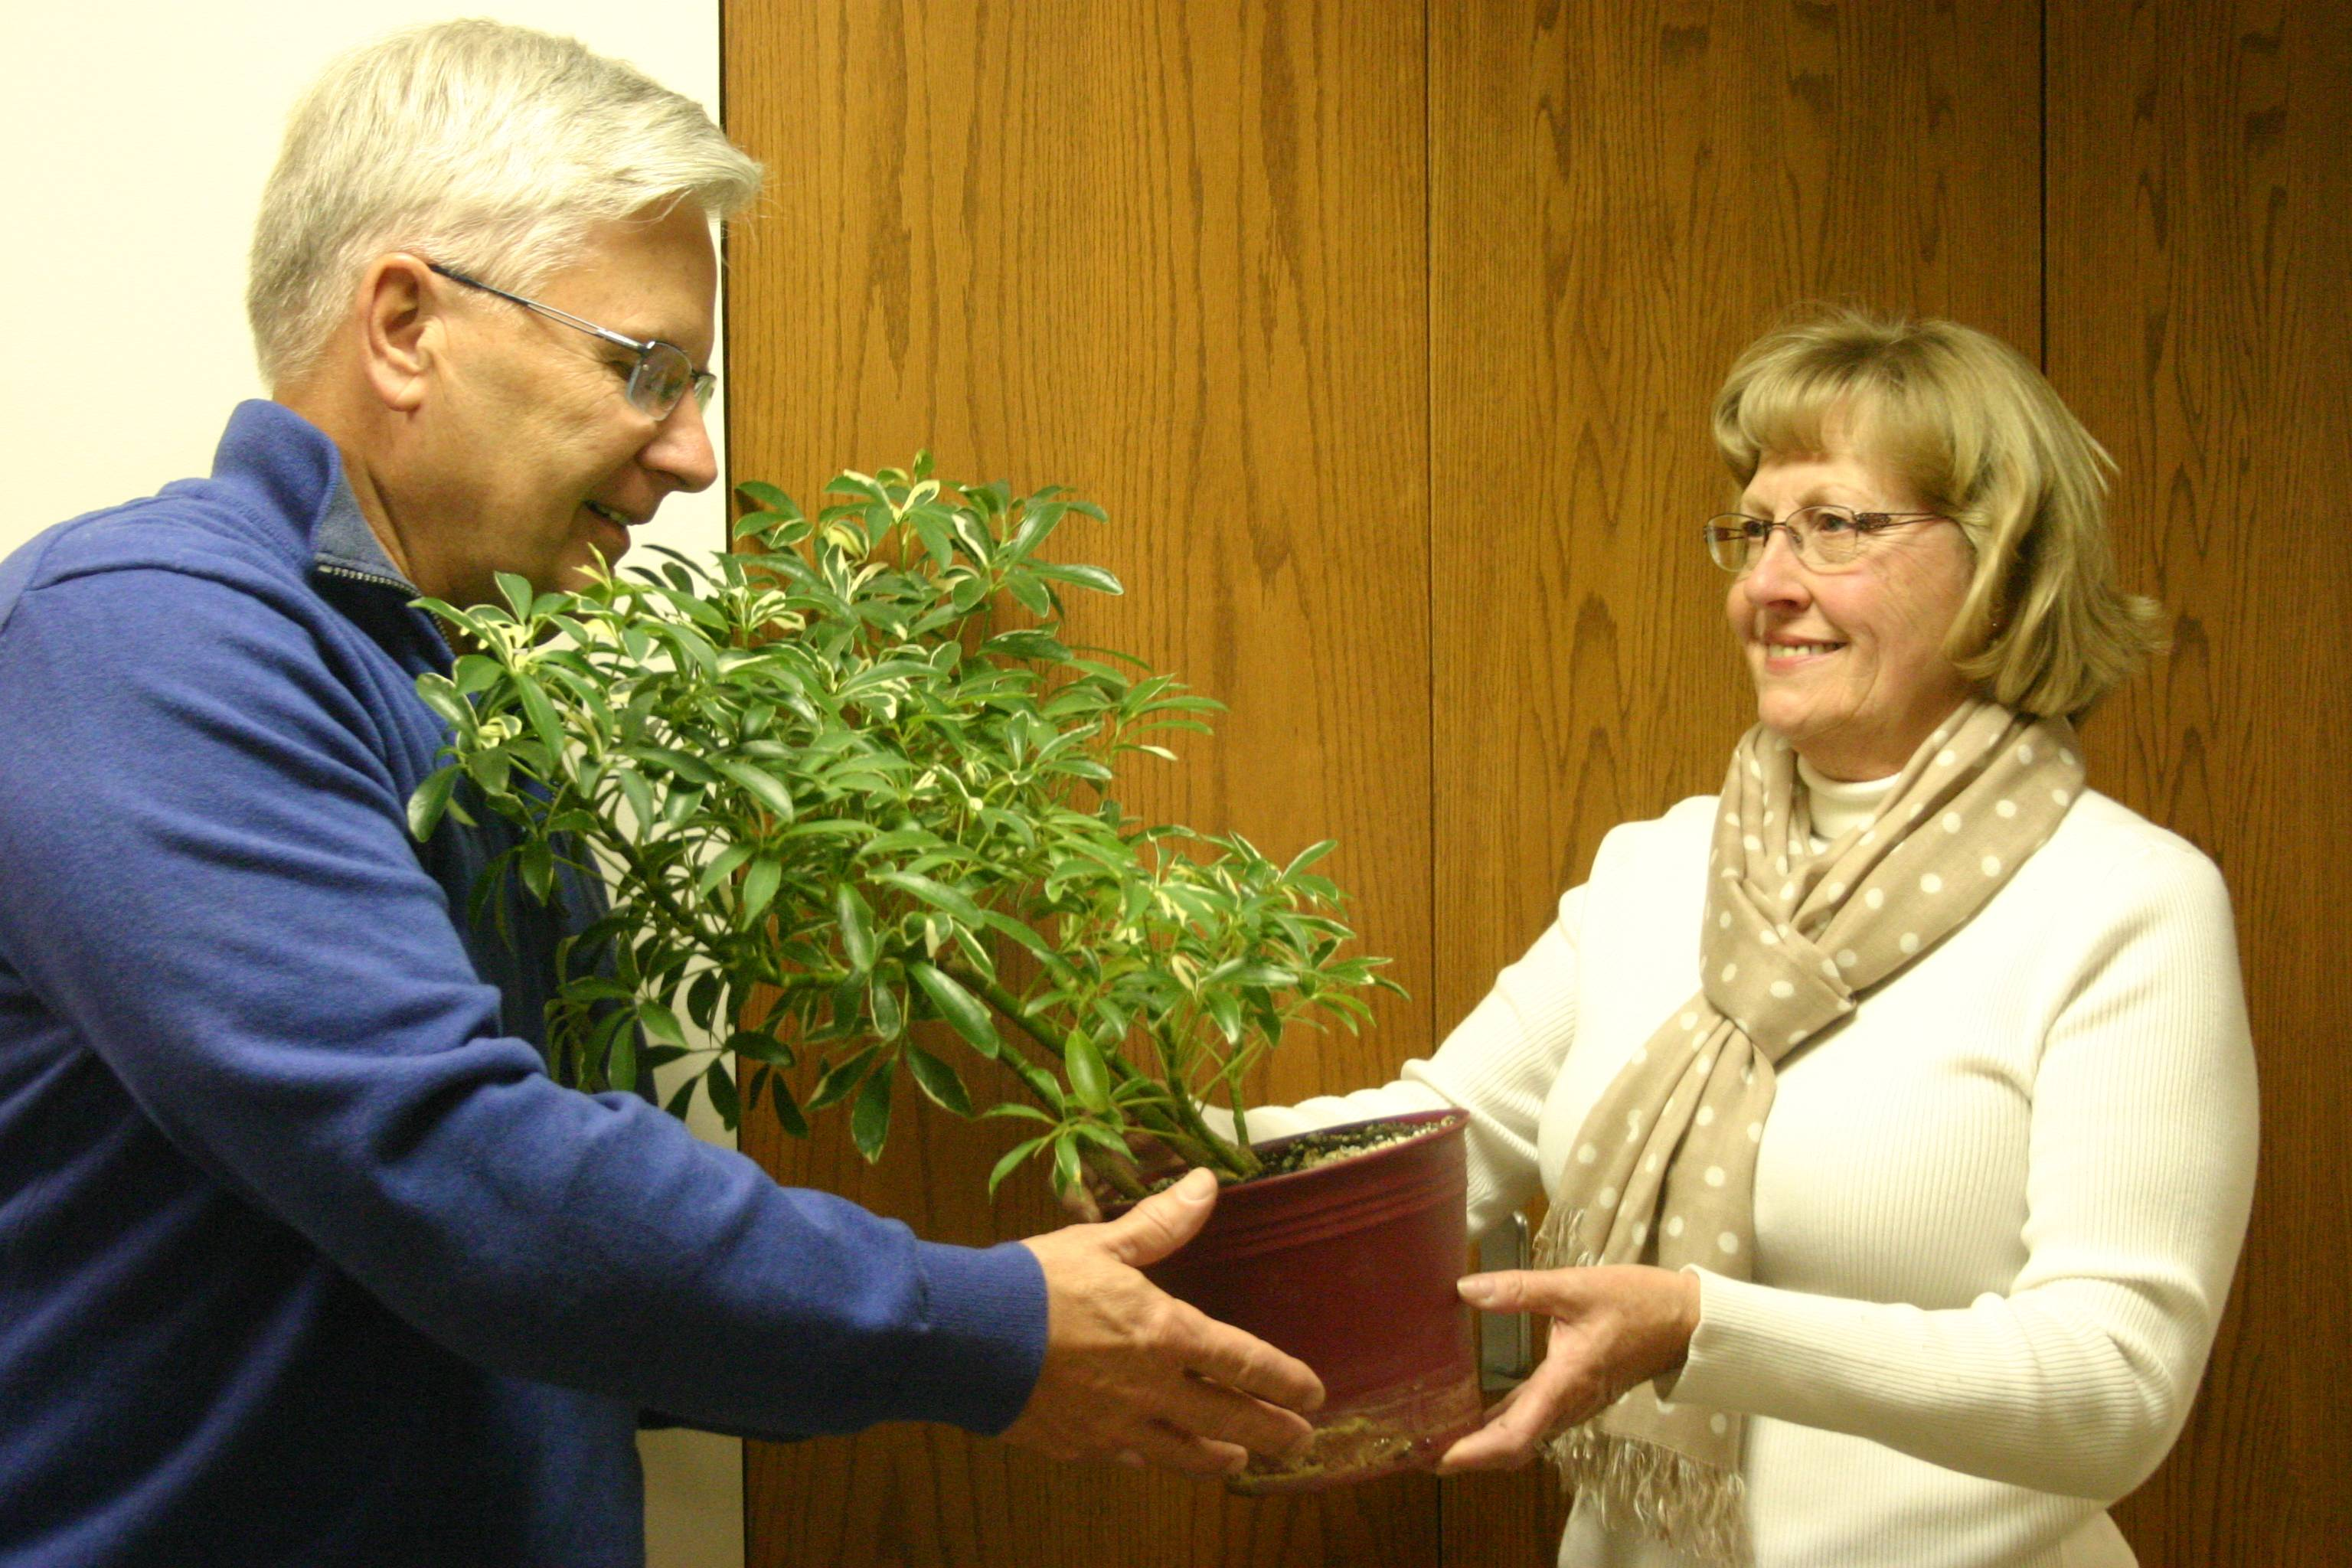 Ken and Pam Bruhn of Elgin gather plants to recreate the Garden of Gethsemane at South Elgin Community United Methodist ChurchShirley Remes